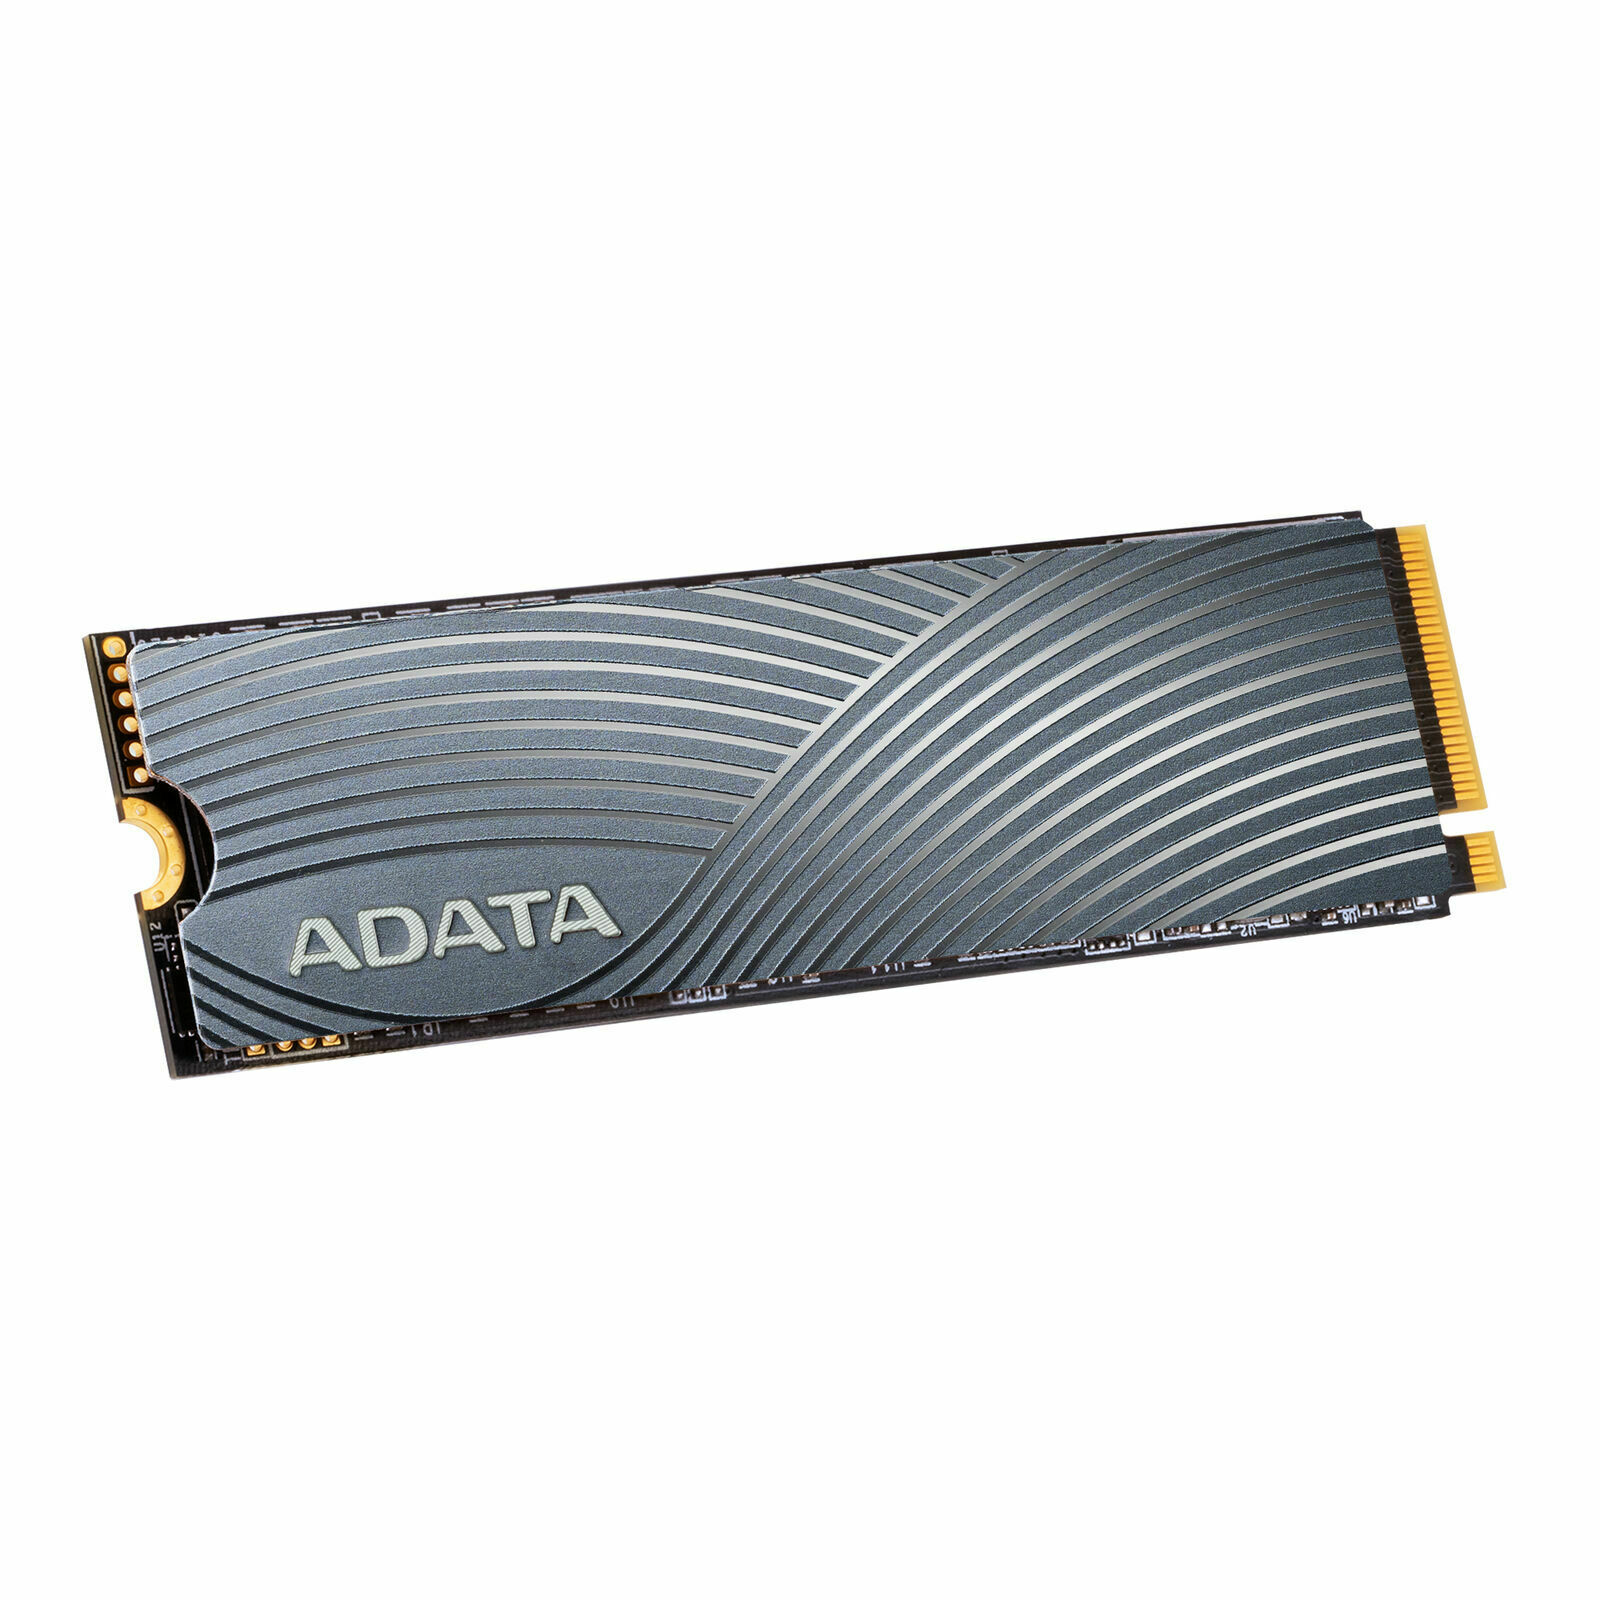 ADATA Swordfish Desktop |Laptop 500G Internal PCIe Gen3x4 M.2 Solid State Drive. Buy it now for 54.98